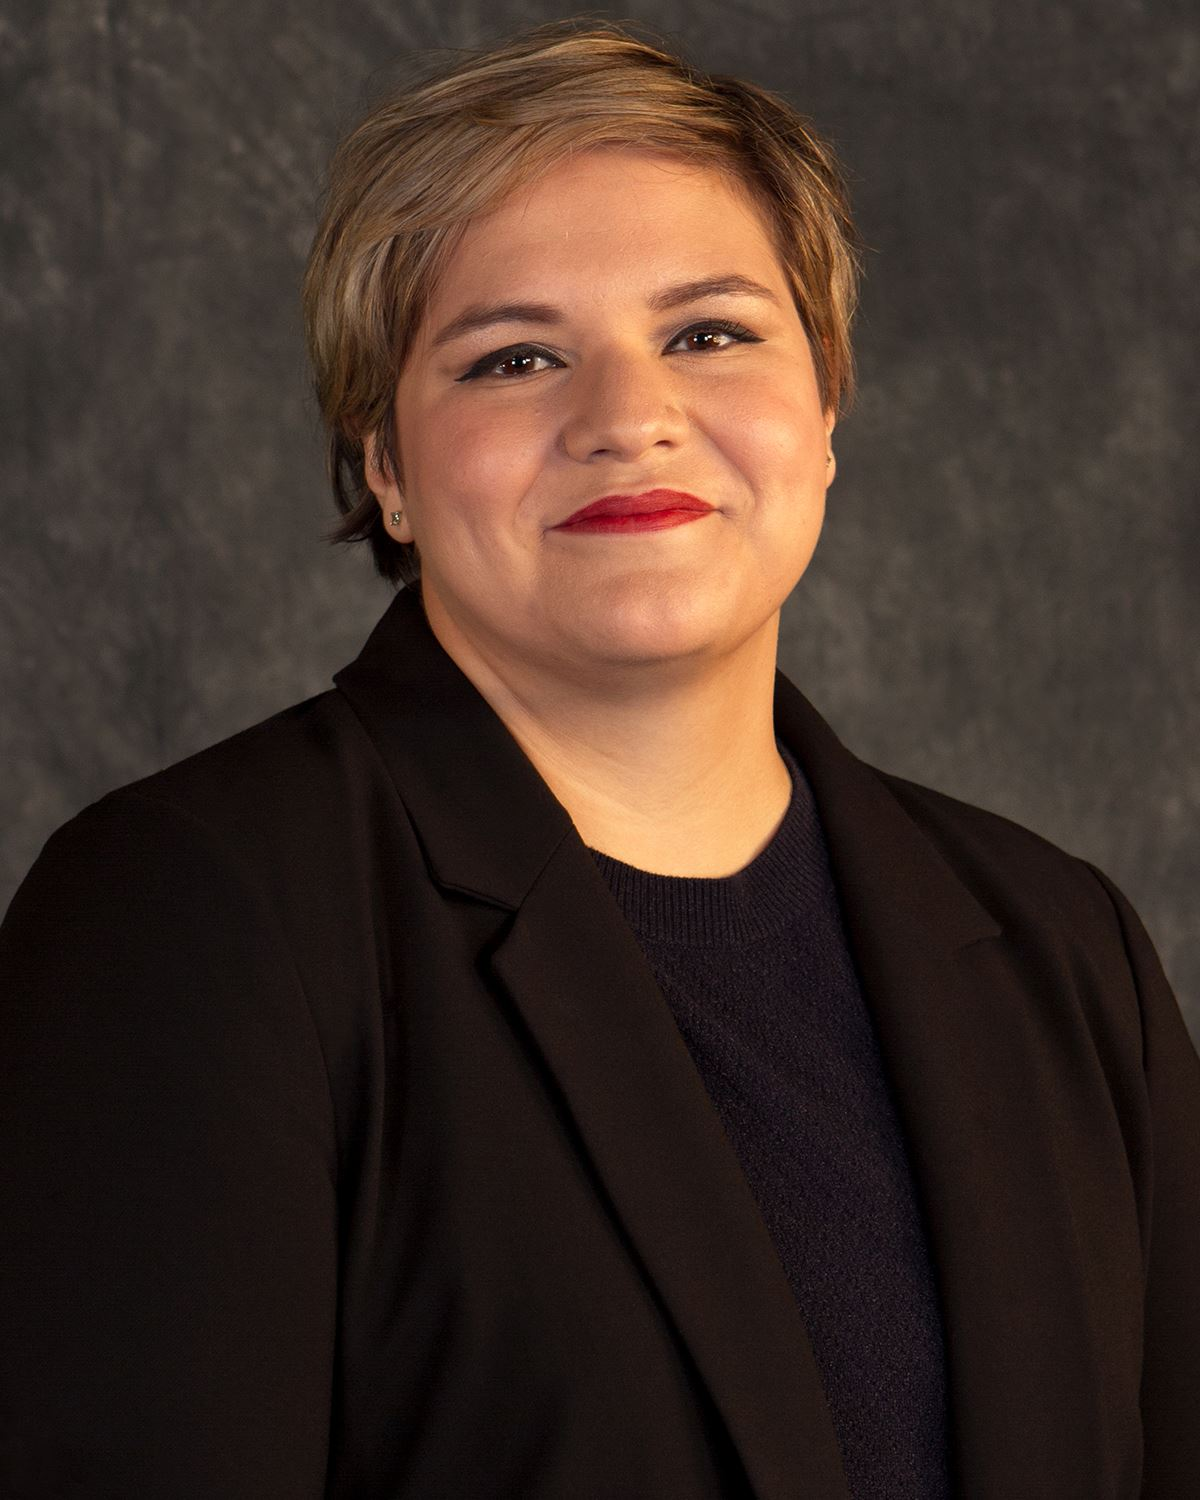 Maria Martinez - City of Mesquite Neighborhood Services Director